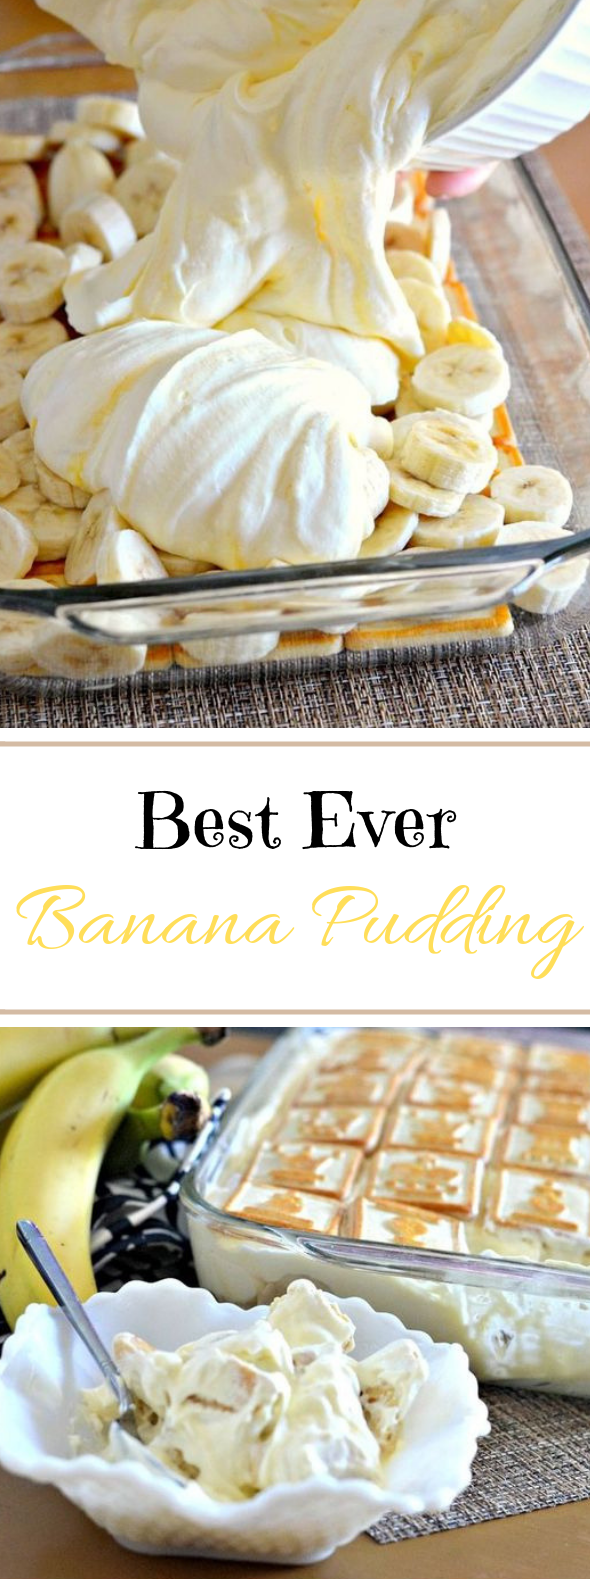 Best Ever Banana Pudding #desserts #pudding